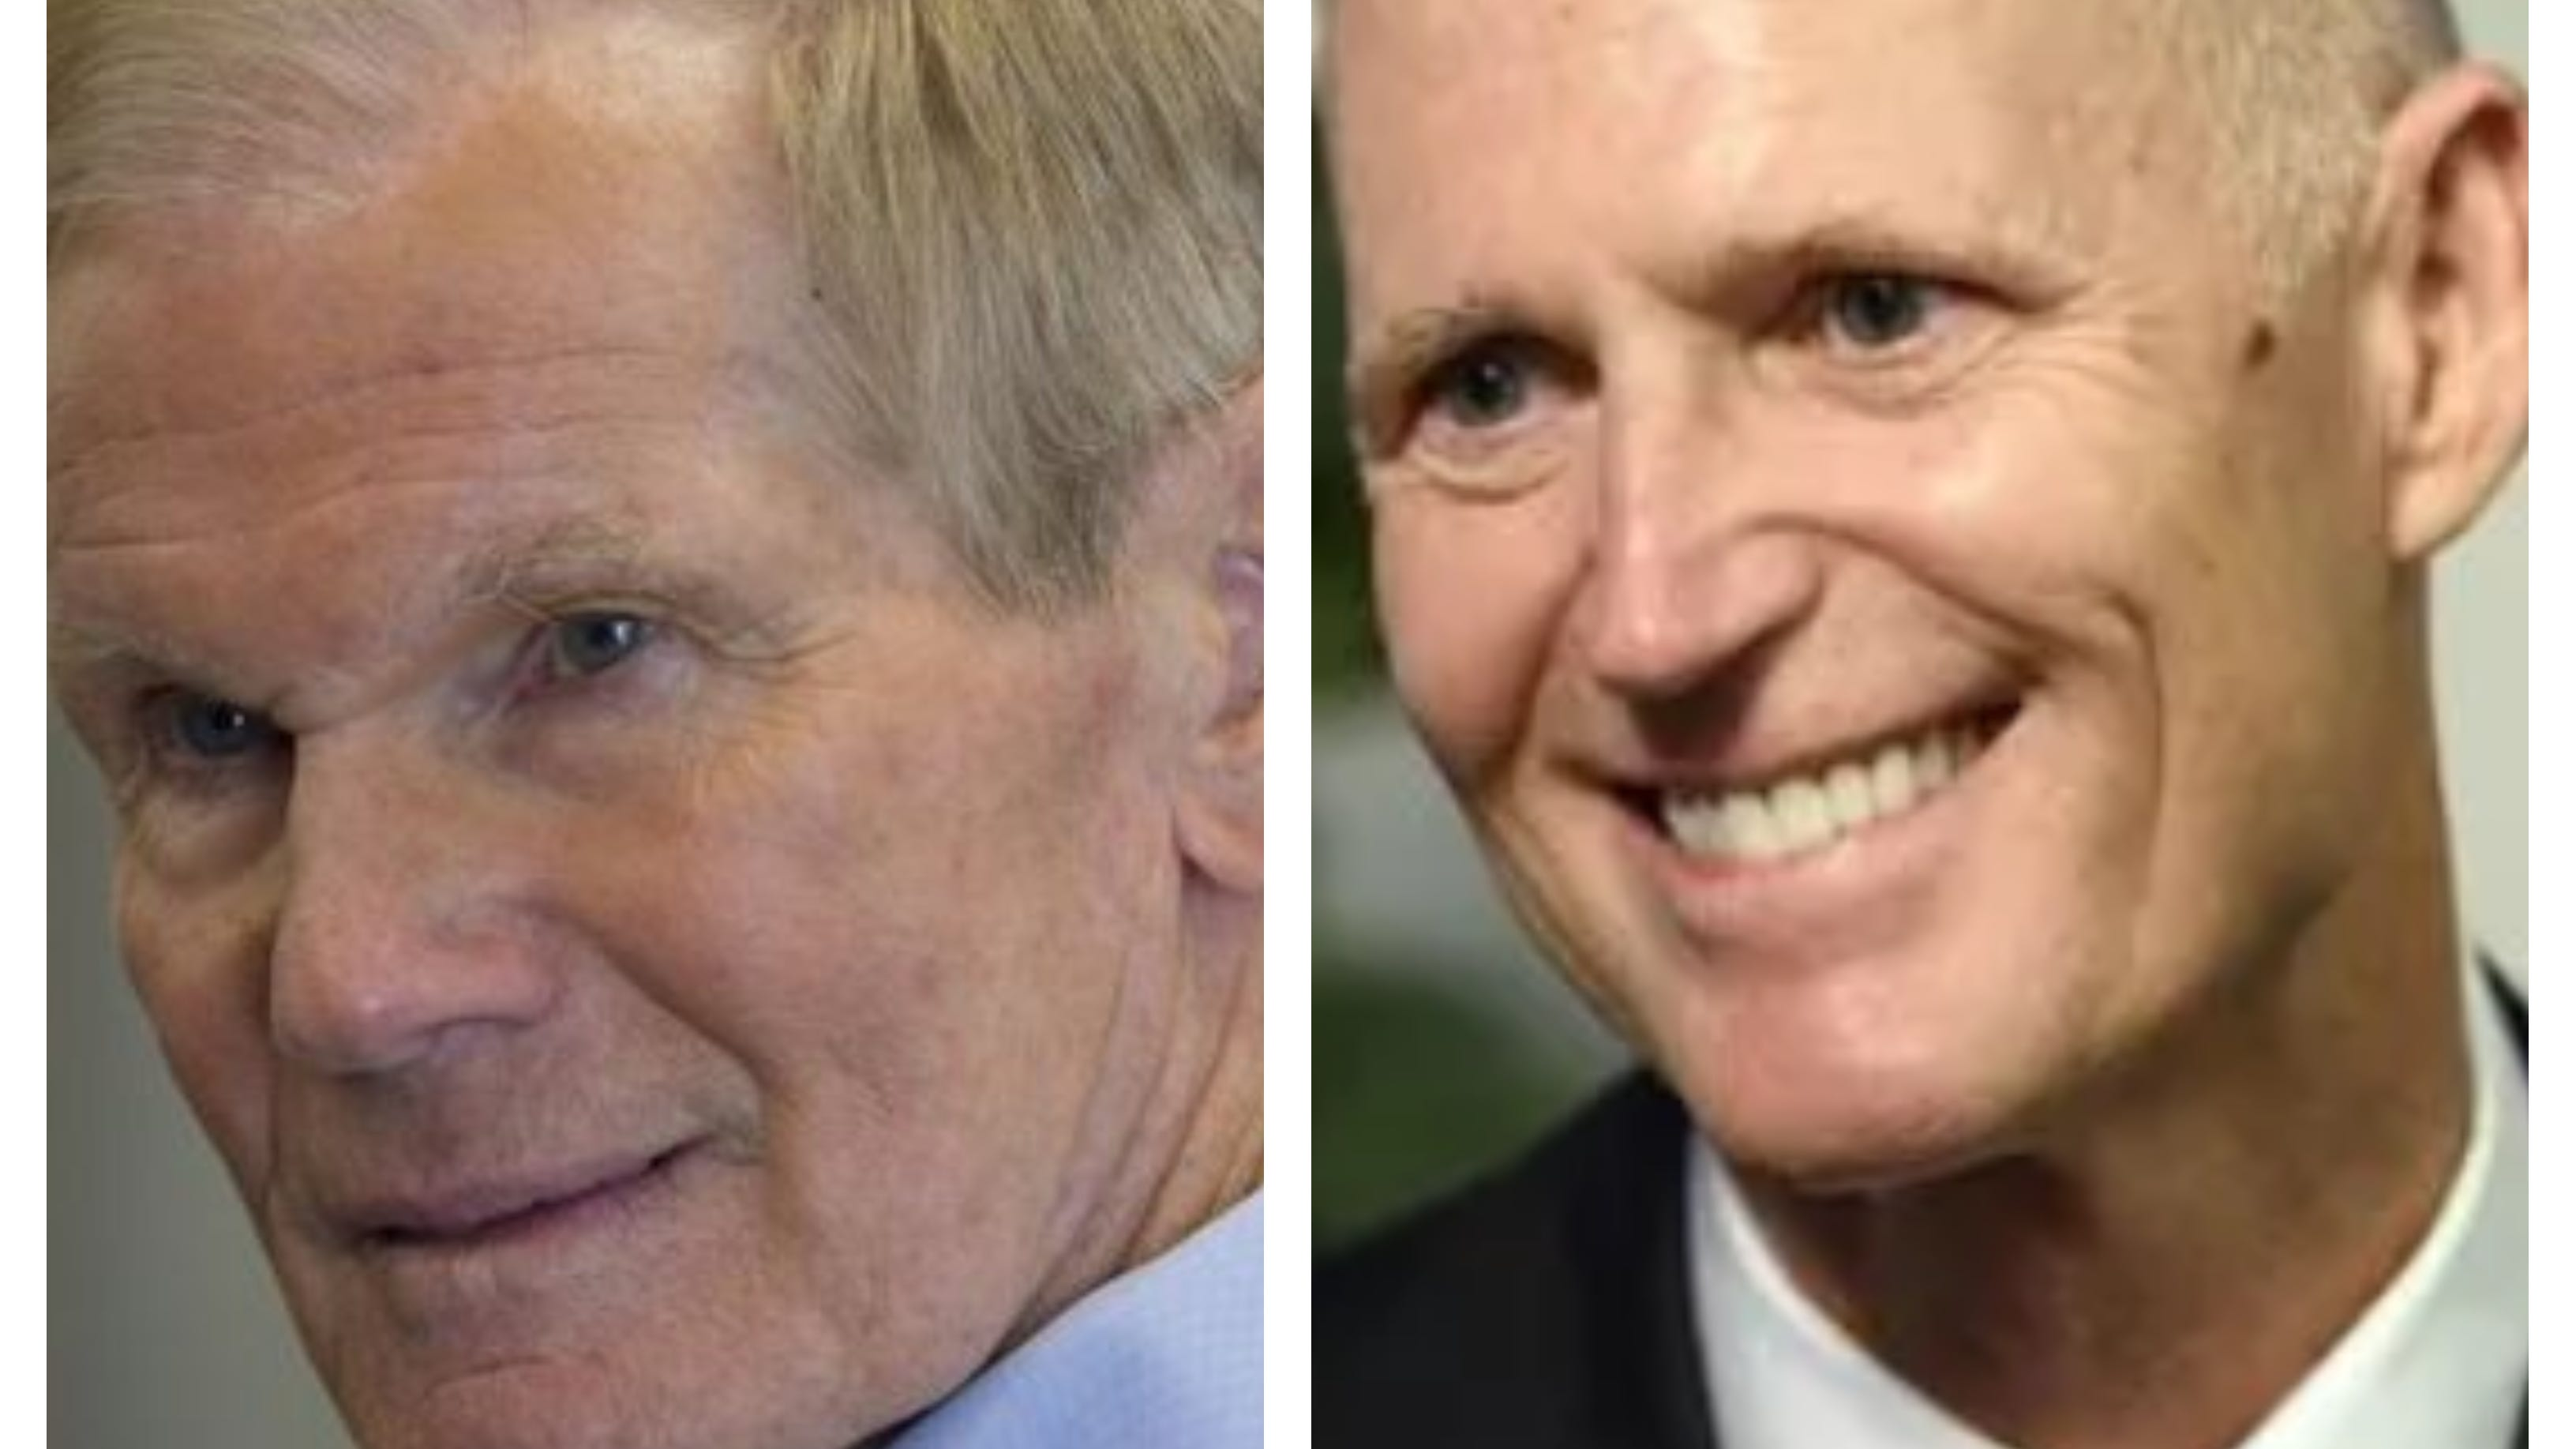 Election Day 2018 in Florida saw close races in some of the biggest races this year. How close? Bill Nelson's pushing for a recount for Senate race